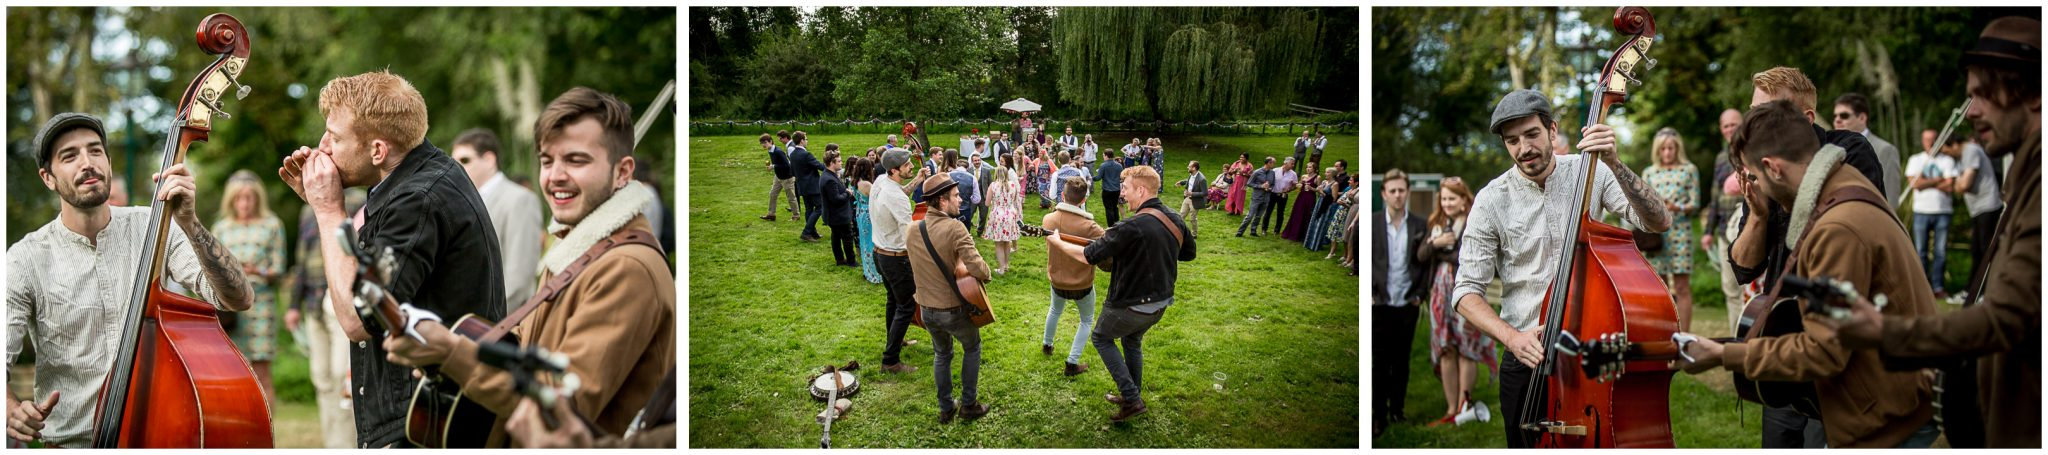 Timsbury Manor Festival Wedding live music in the afternoon